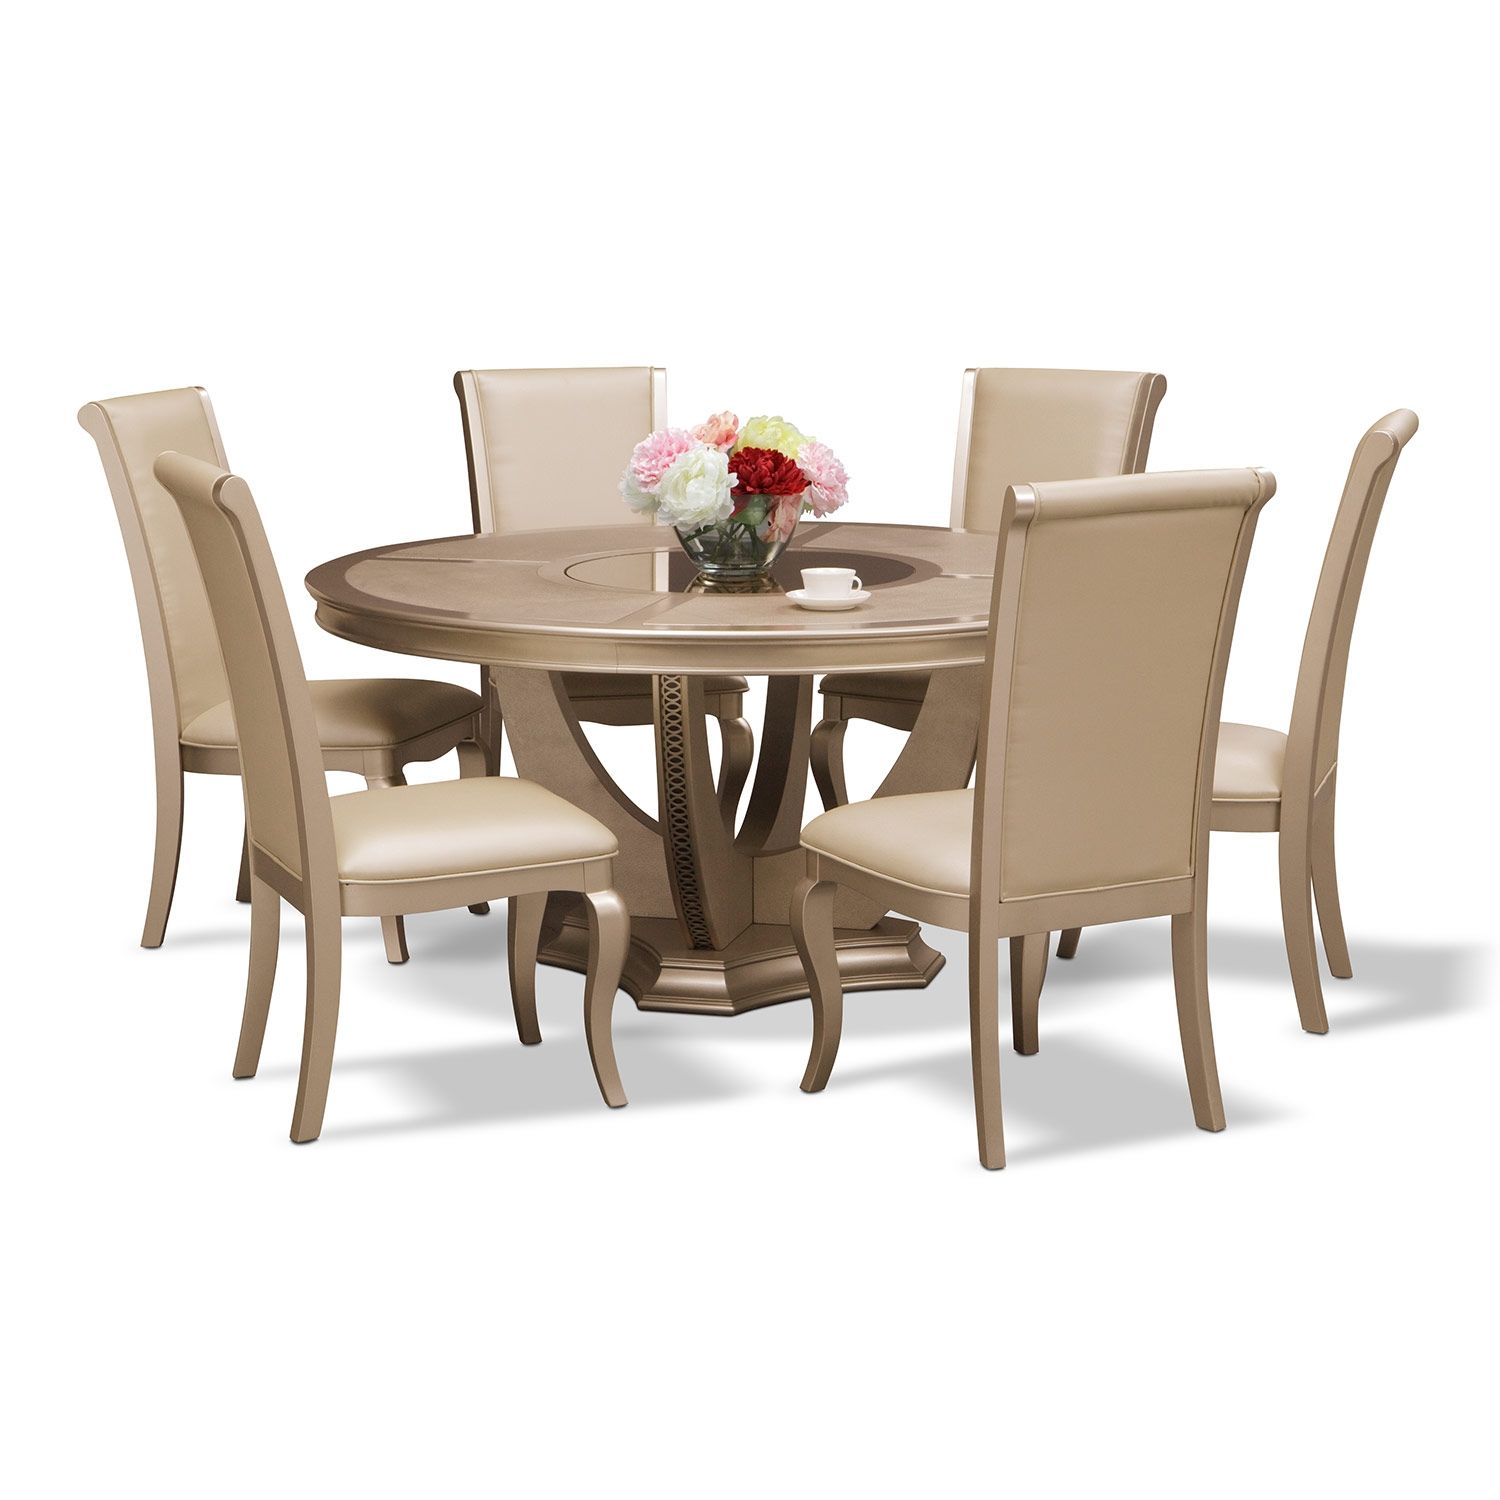 Allegro 7 Pc Dining Room Kitchen Dining Furniture Round Dining Room Dining Chairs